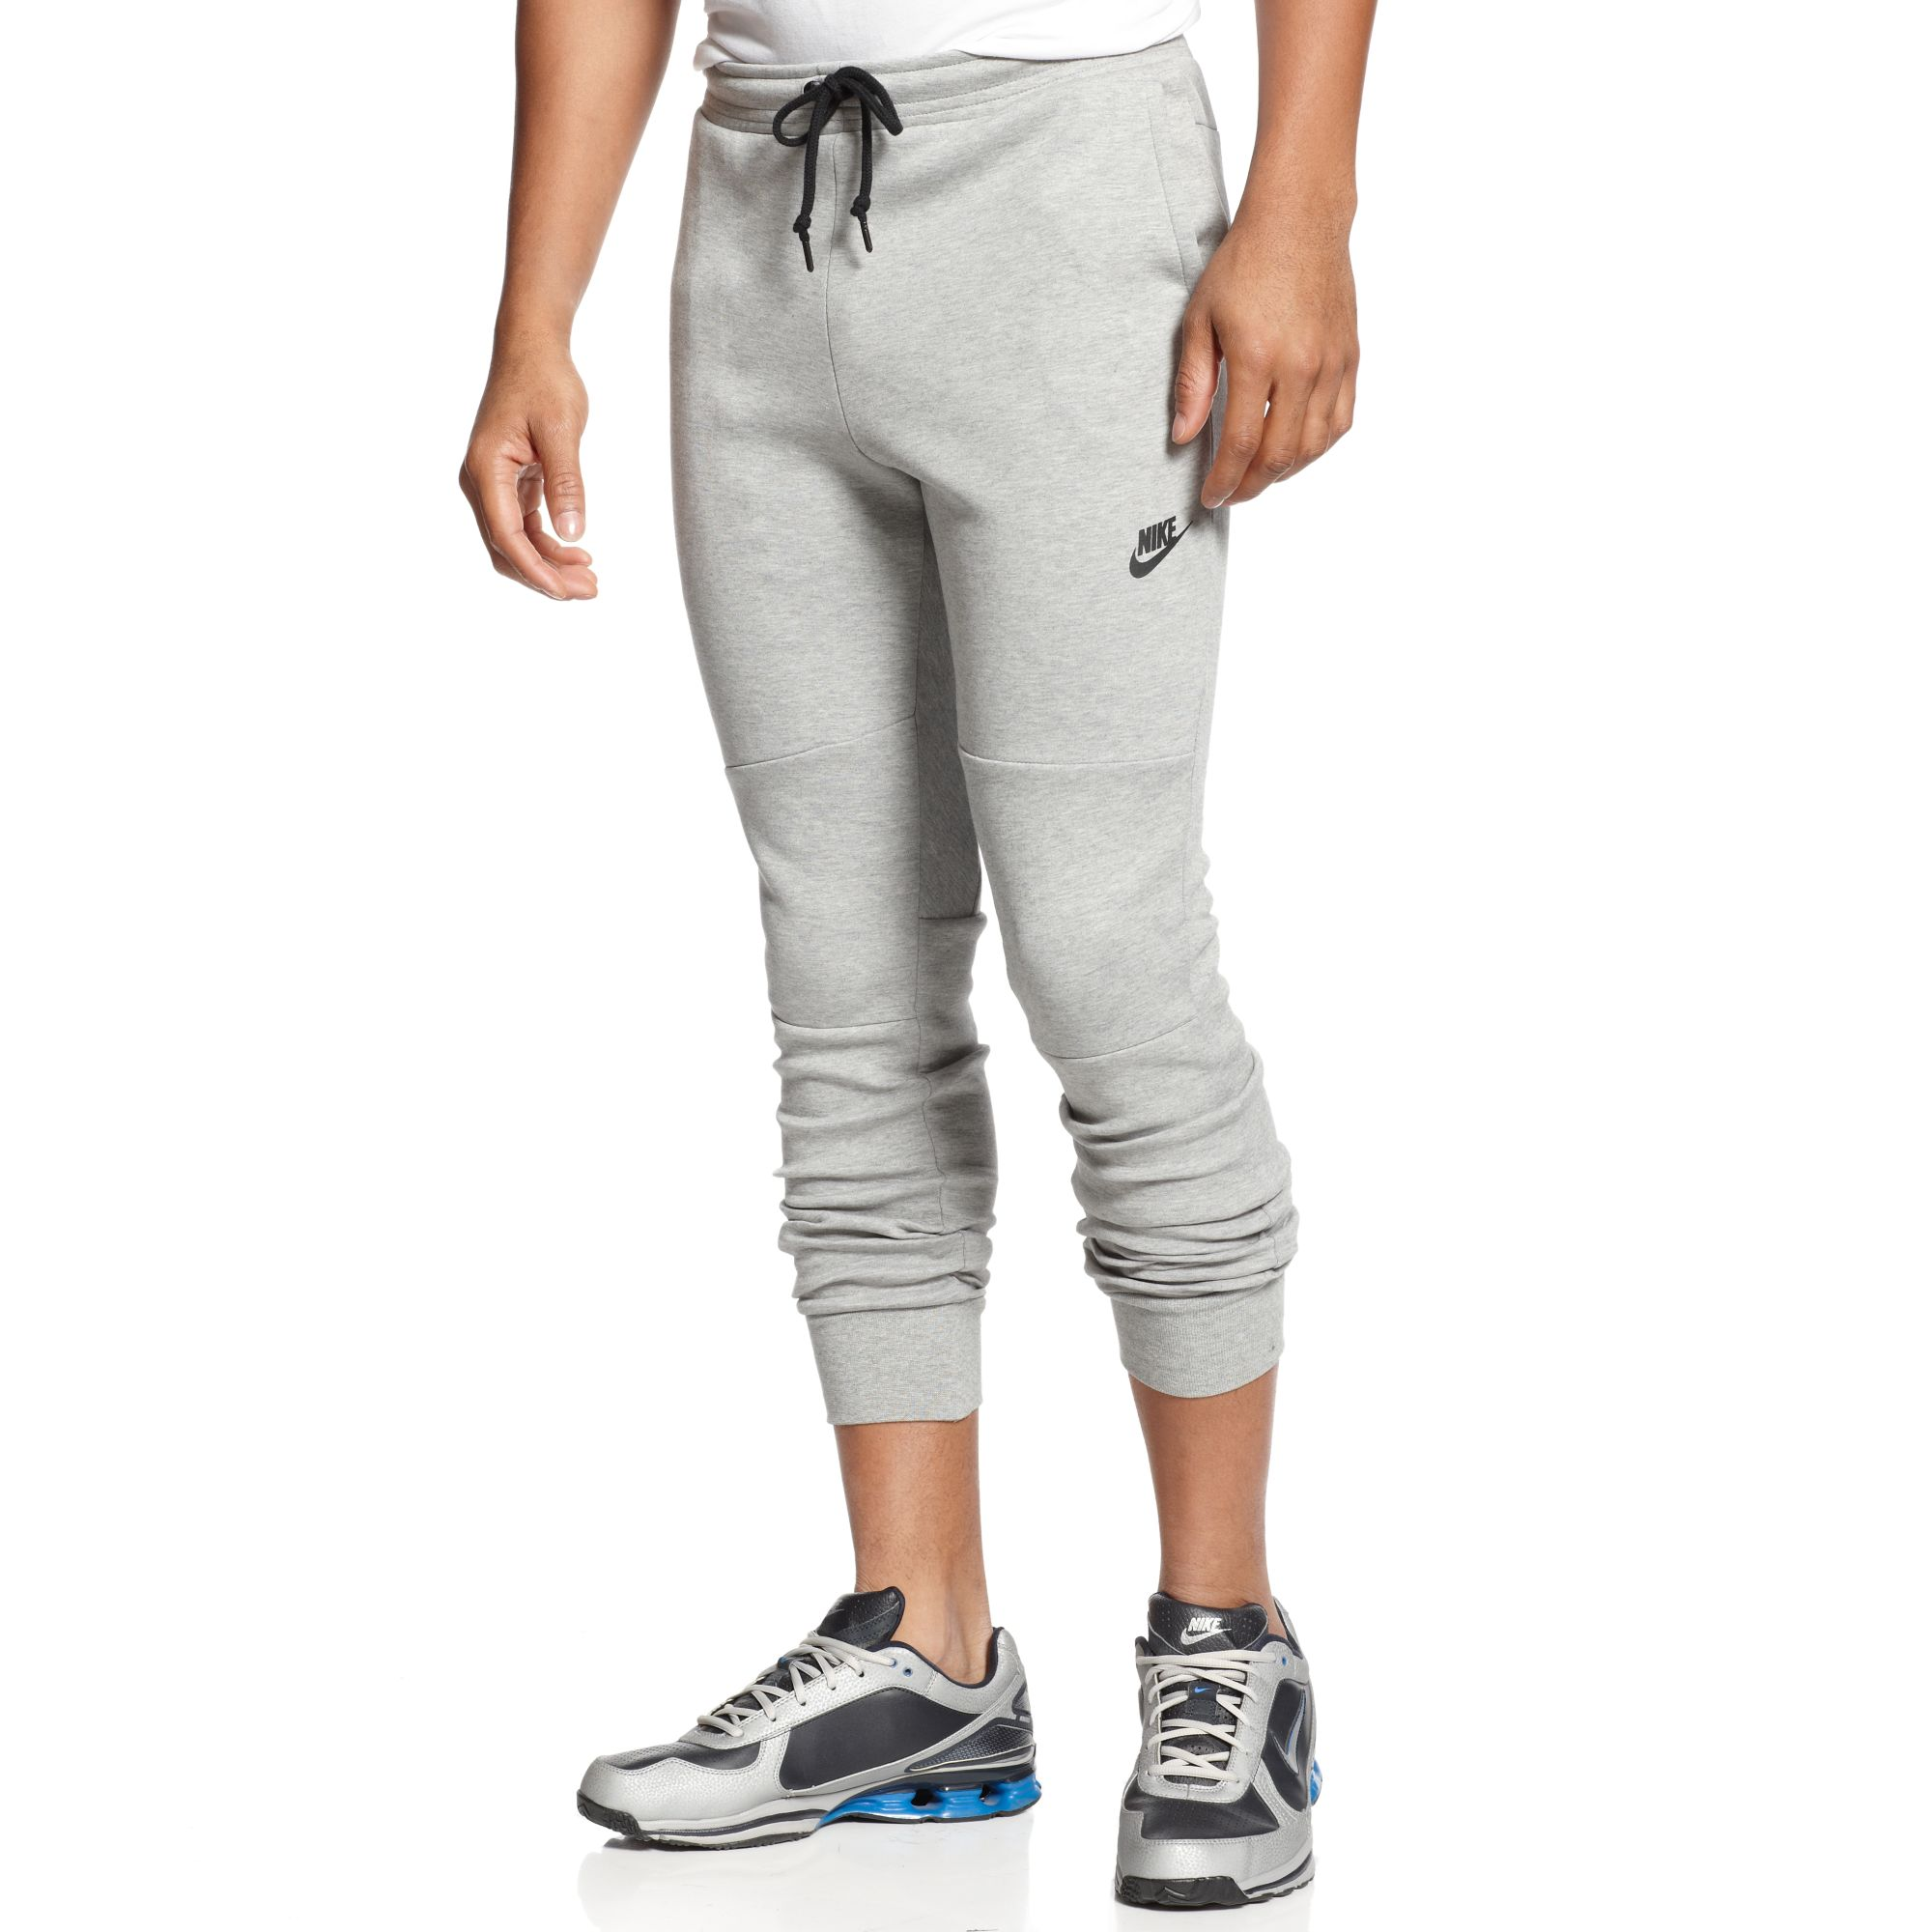 lyst nike tech fleece pants in gray for men. Black Bedroom Furniture Sets. Home Design Ideas